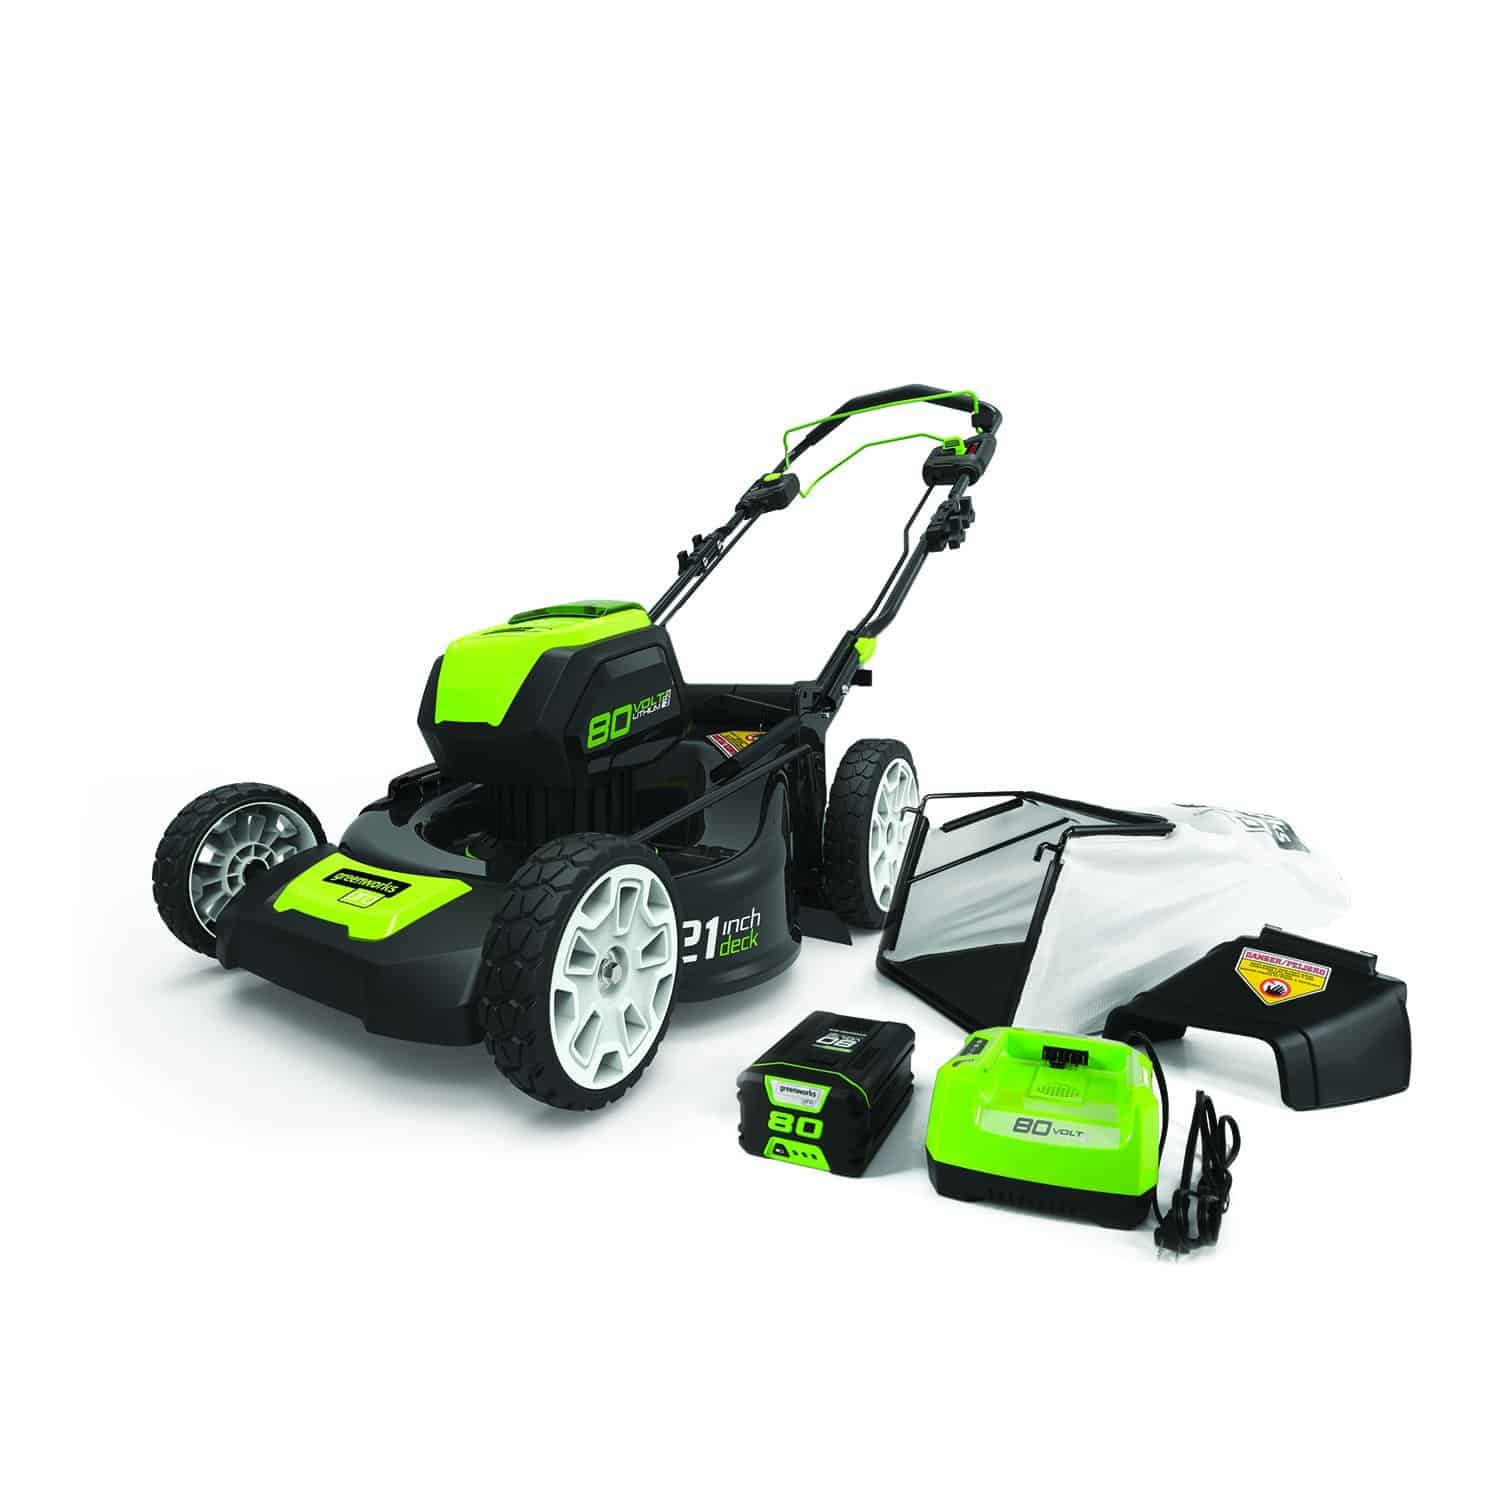 GreenWorks MO80L510 Self Propelled Cordless